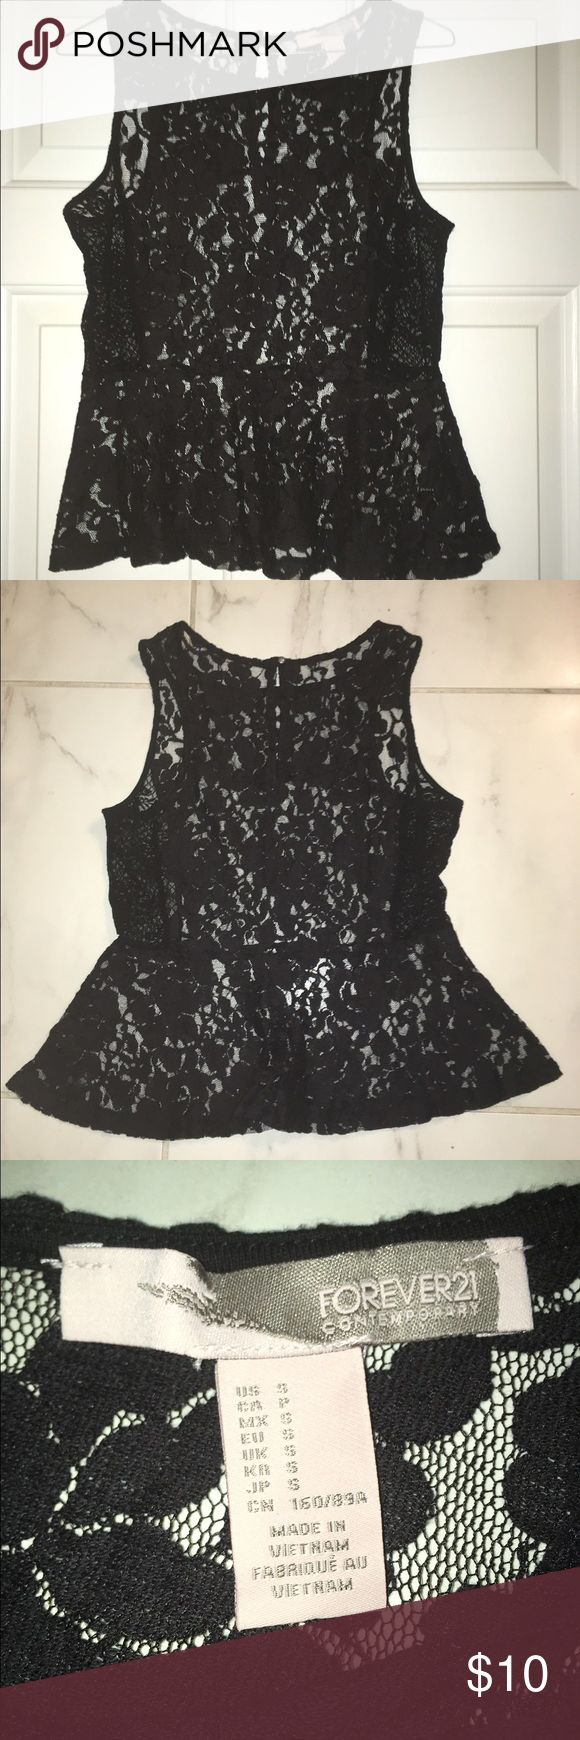 Forever 21 Black Lace Peplum Top Black lace Forever 21 peplum top. Key hole button detail on back. Size small. Great condition. Never worn. Forever 21 Tops Blouses